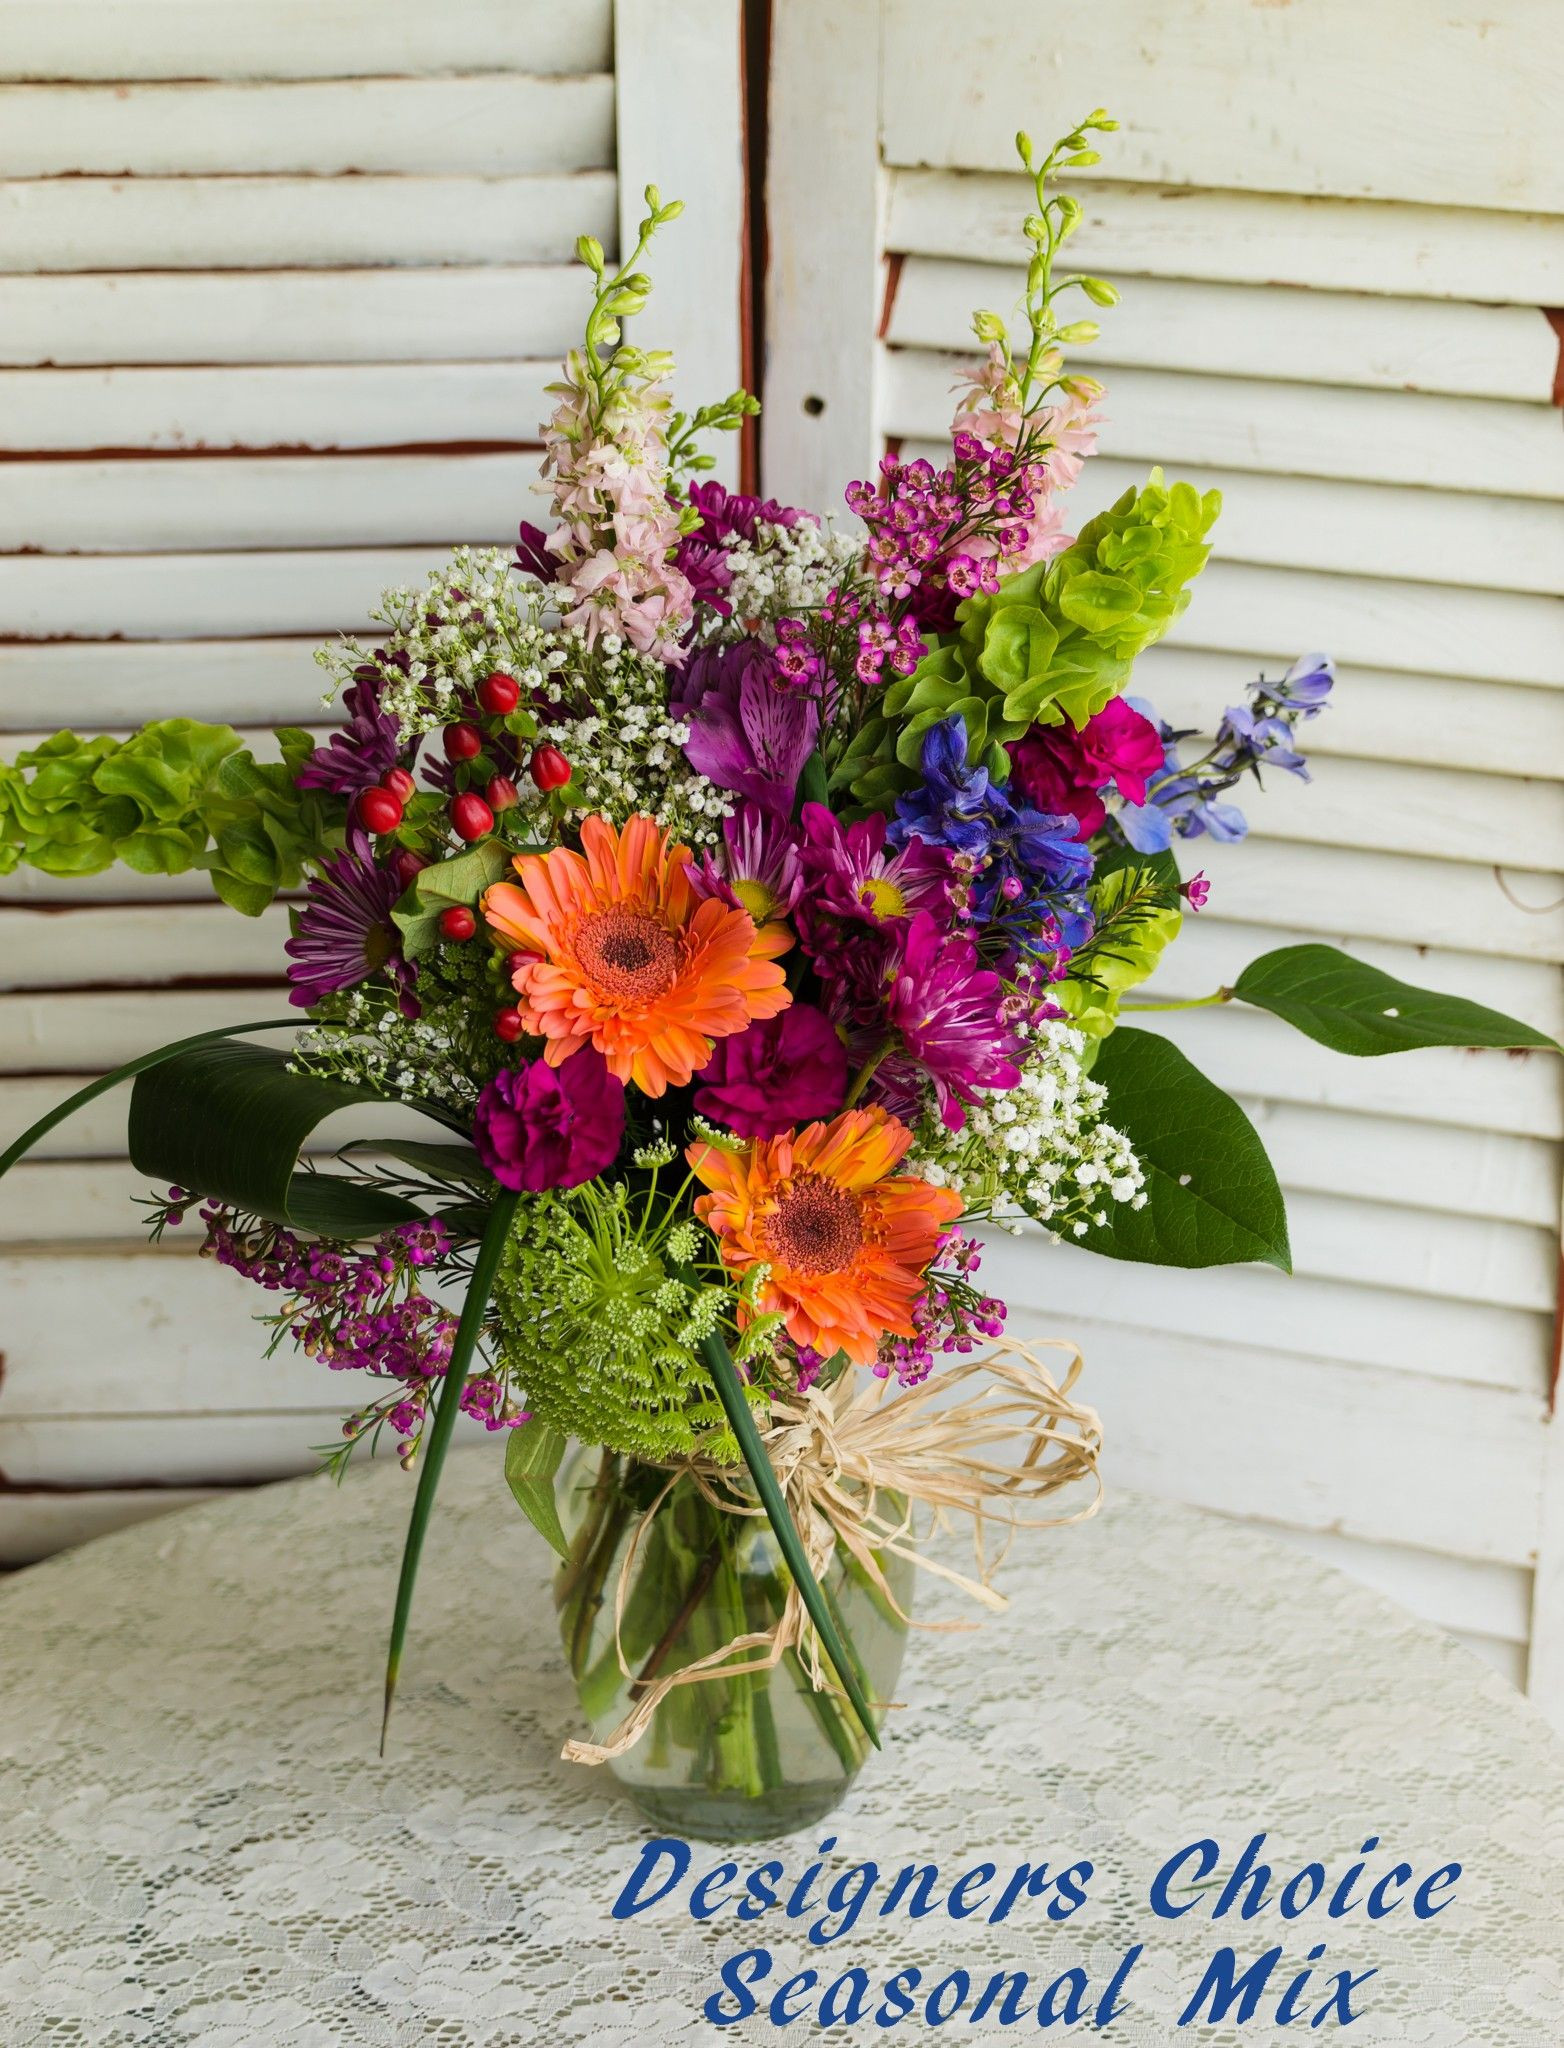 Send Designers Choice Seasonal Arrangement in Cleburne TX from Fountain Designs the best florist in Cleburne